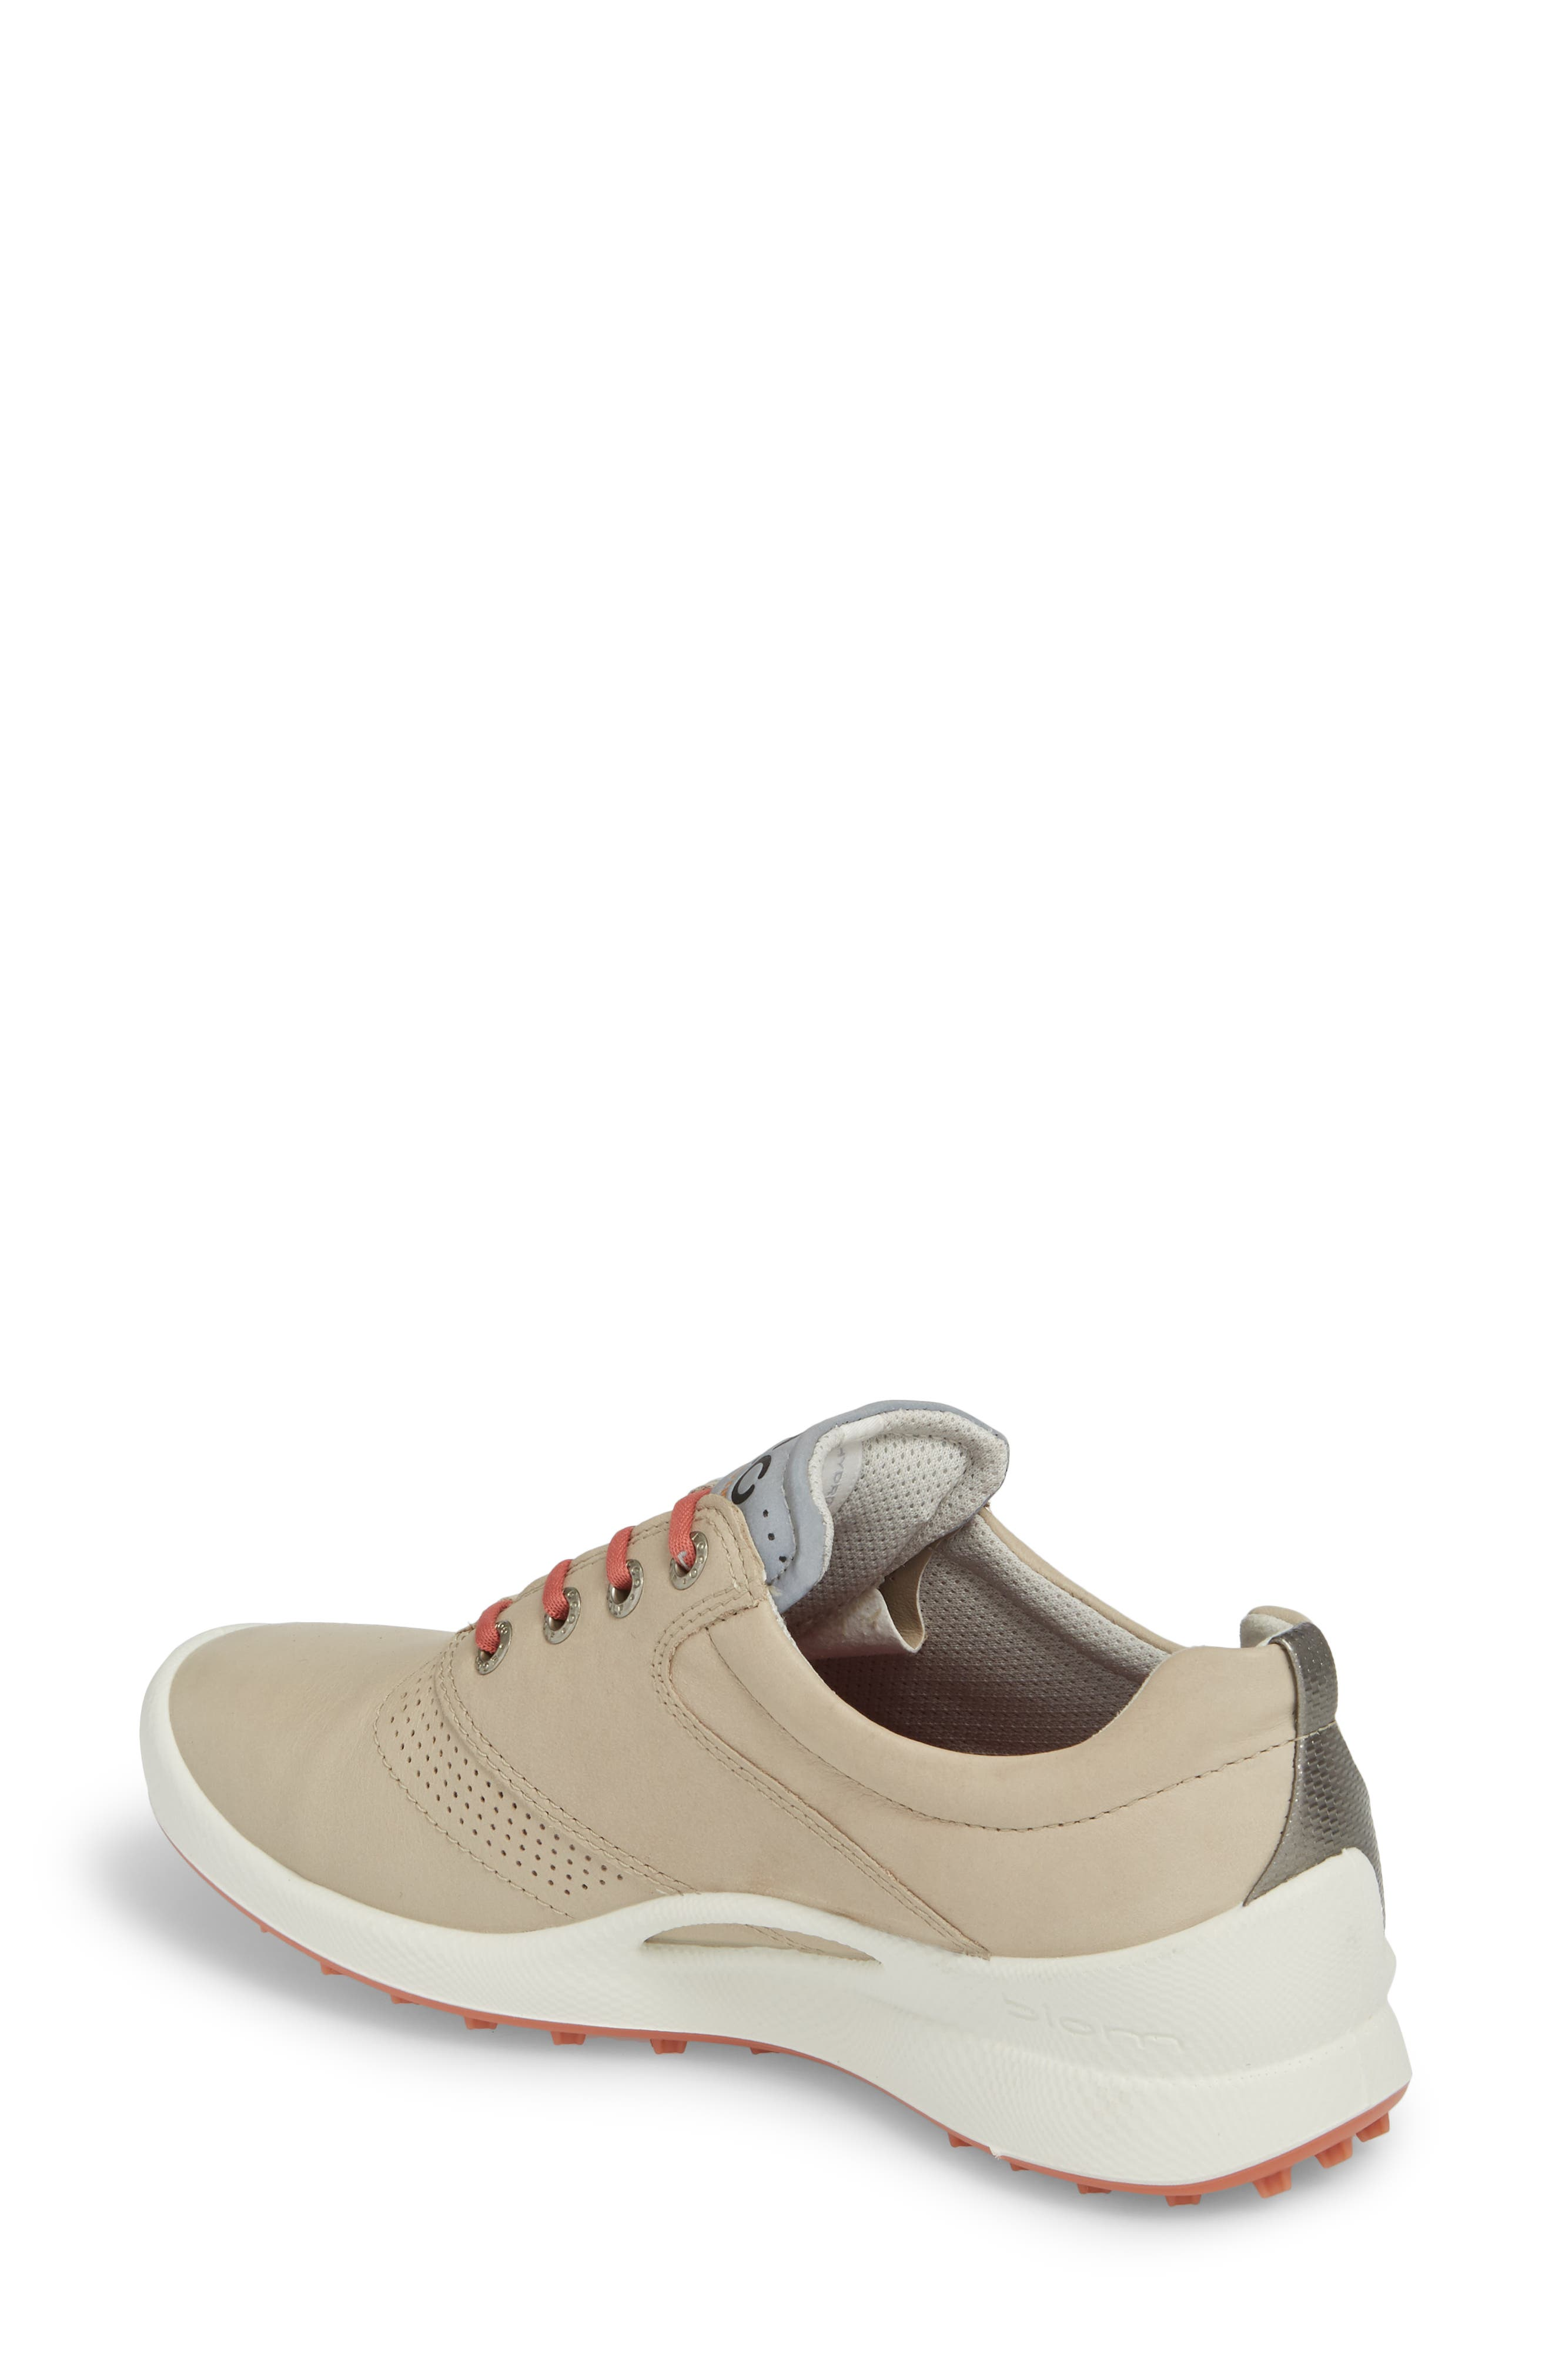 Biom Hybrid Golf Shoe,                             Alternate thumbnail 2, color,                             Oyster Leather